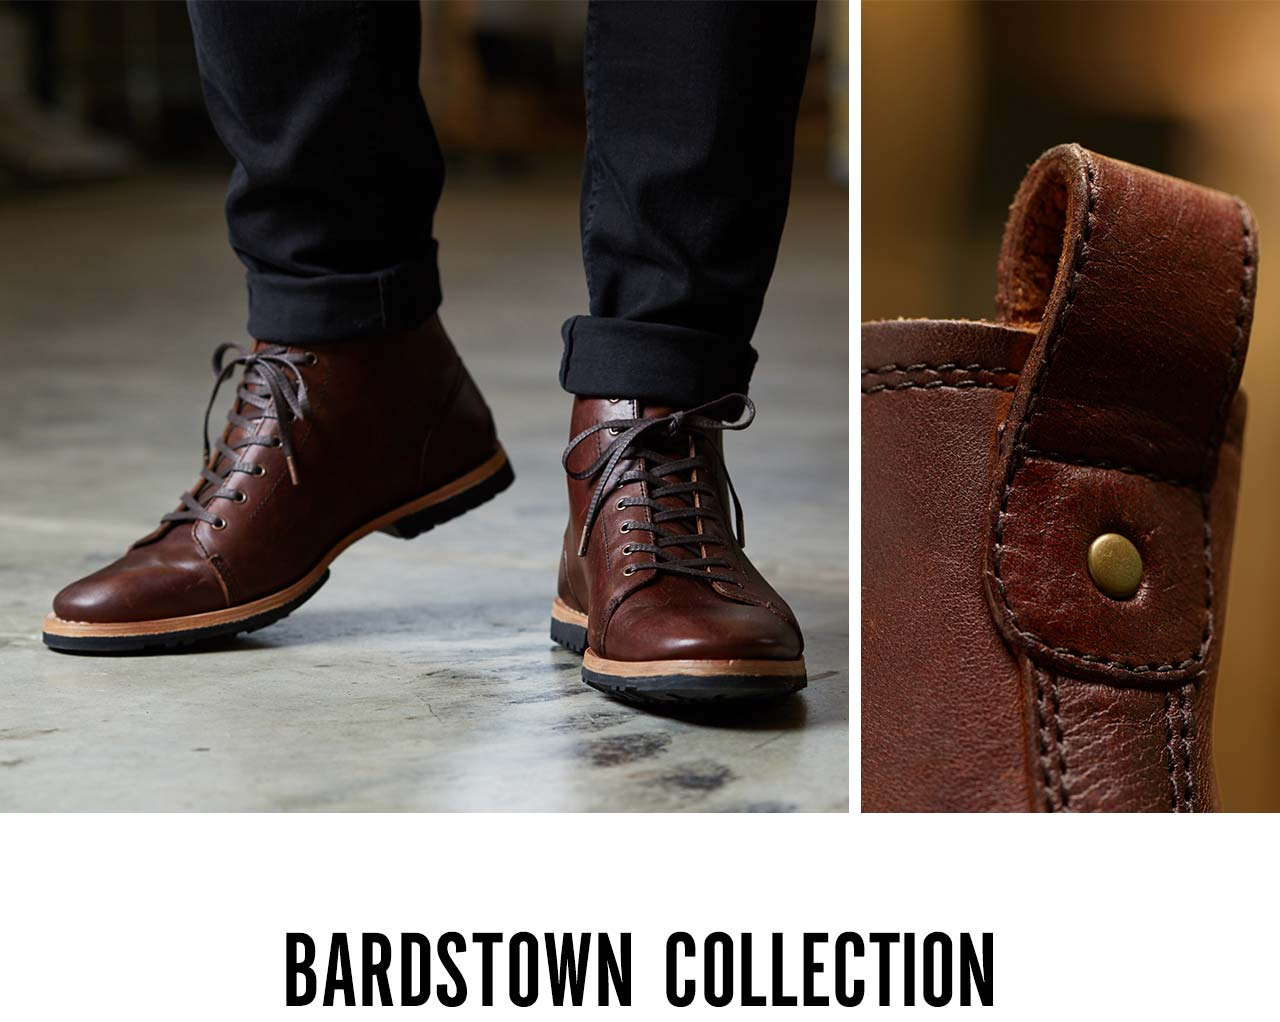 Bardstown Collection